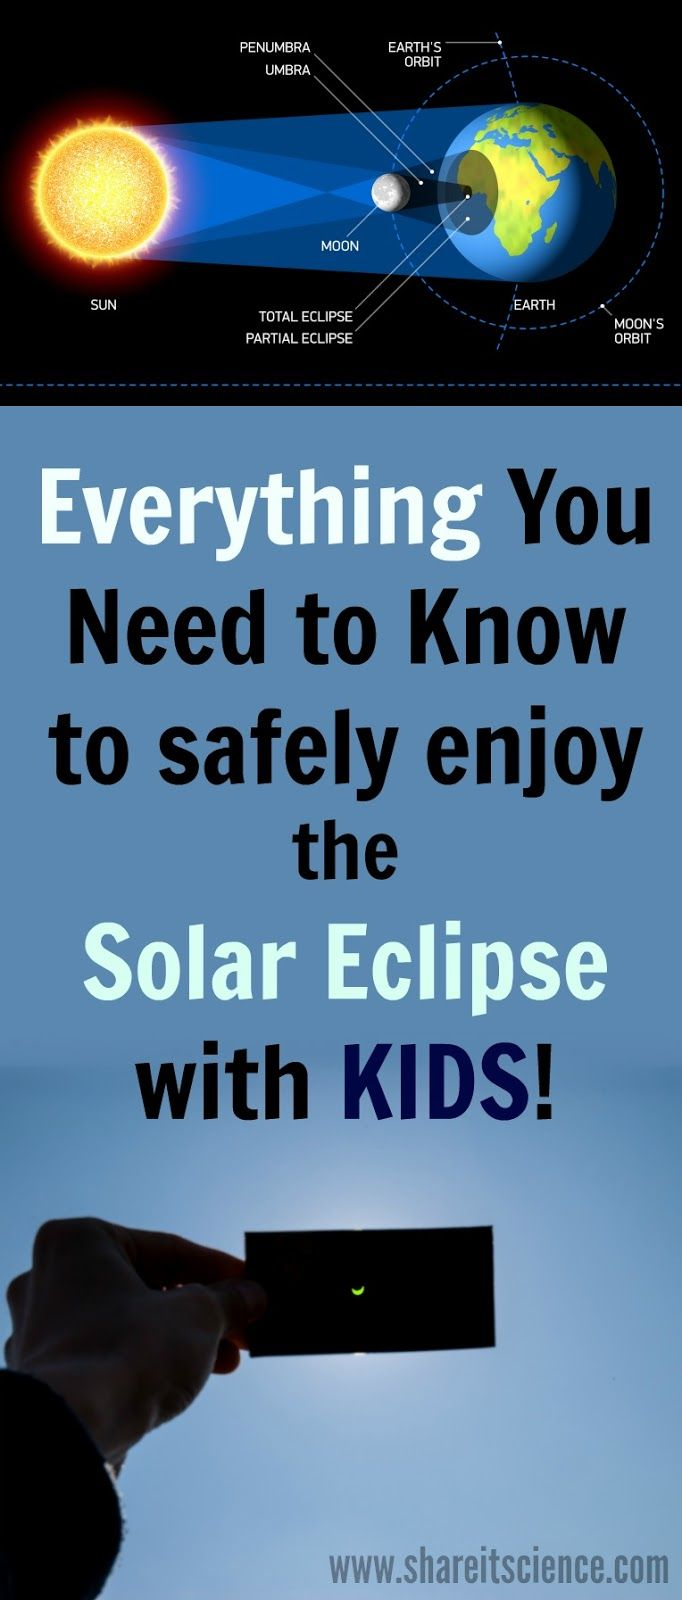 Want to watch the eclipse? Here is how to do it safely! Great American Solar Eclipse Safety and Learning Resources.